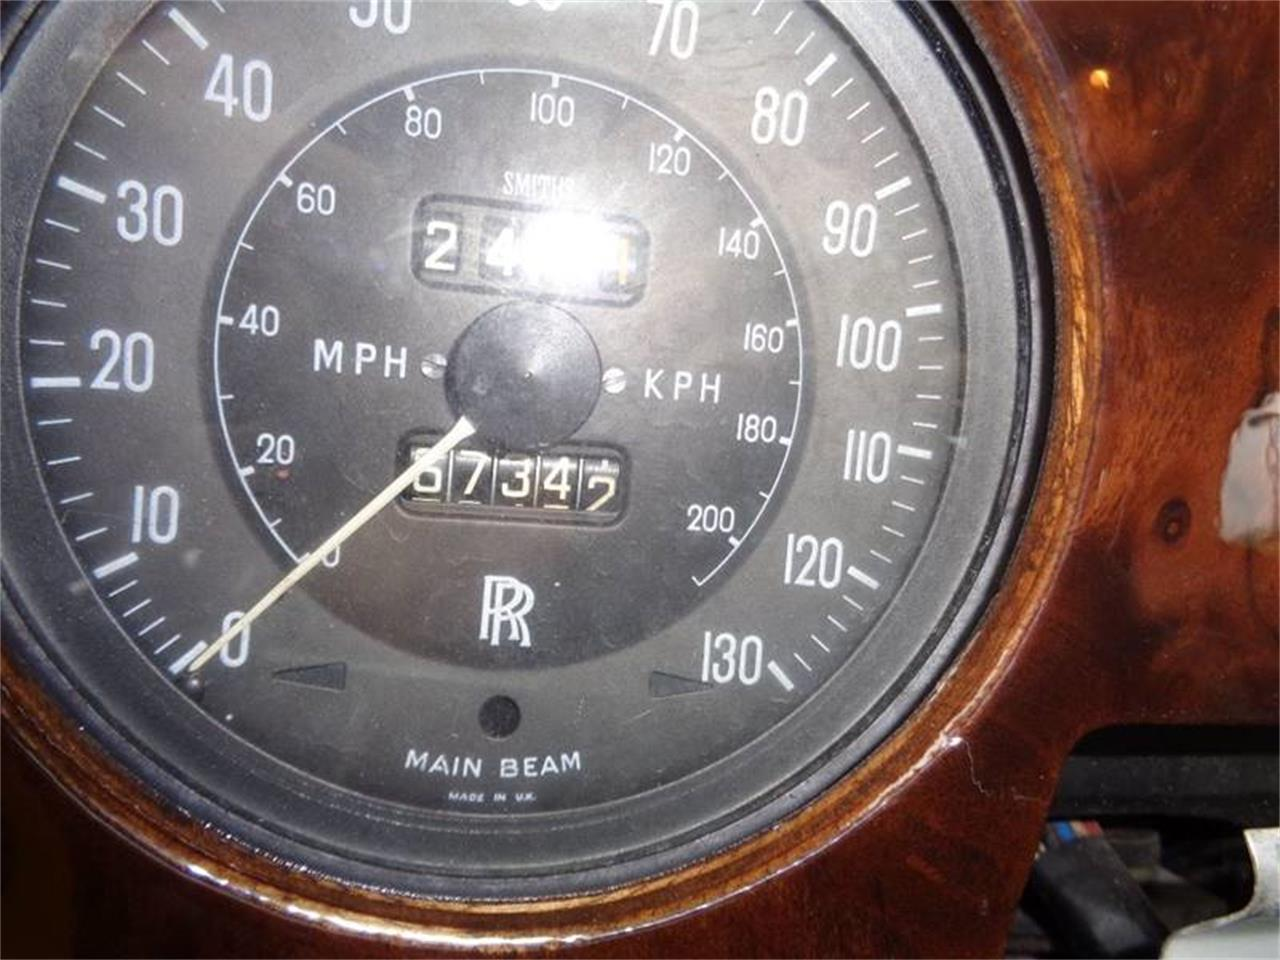 1973 Rolls-Royce Silver Shadow for sale in Fort Lauderdale, FL – photo 14